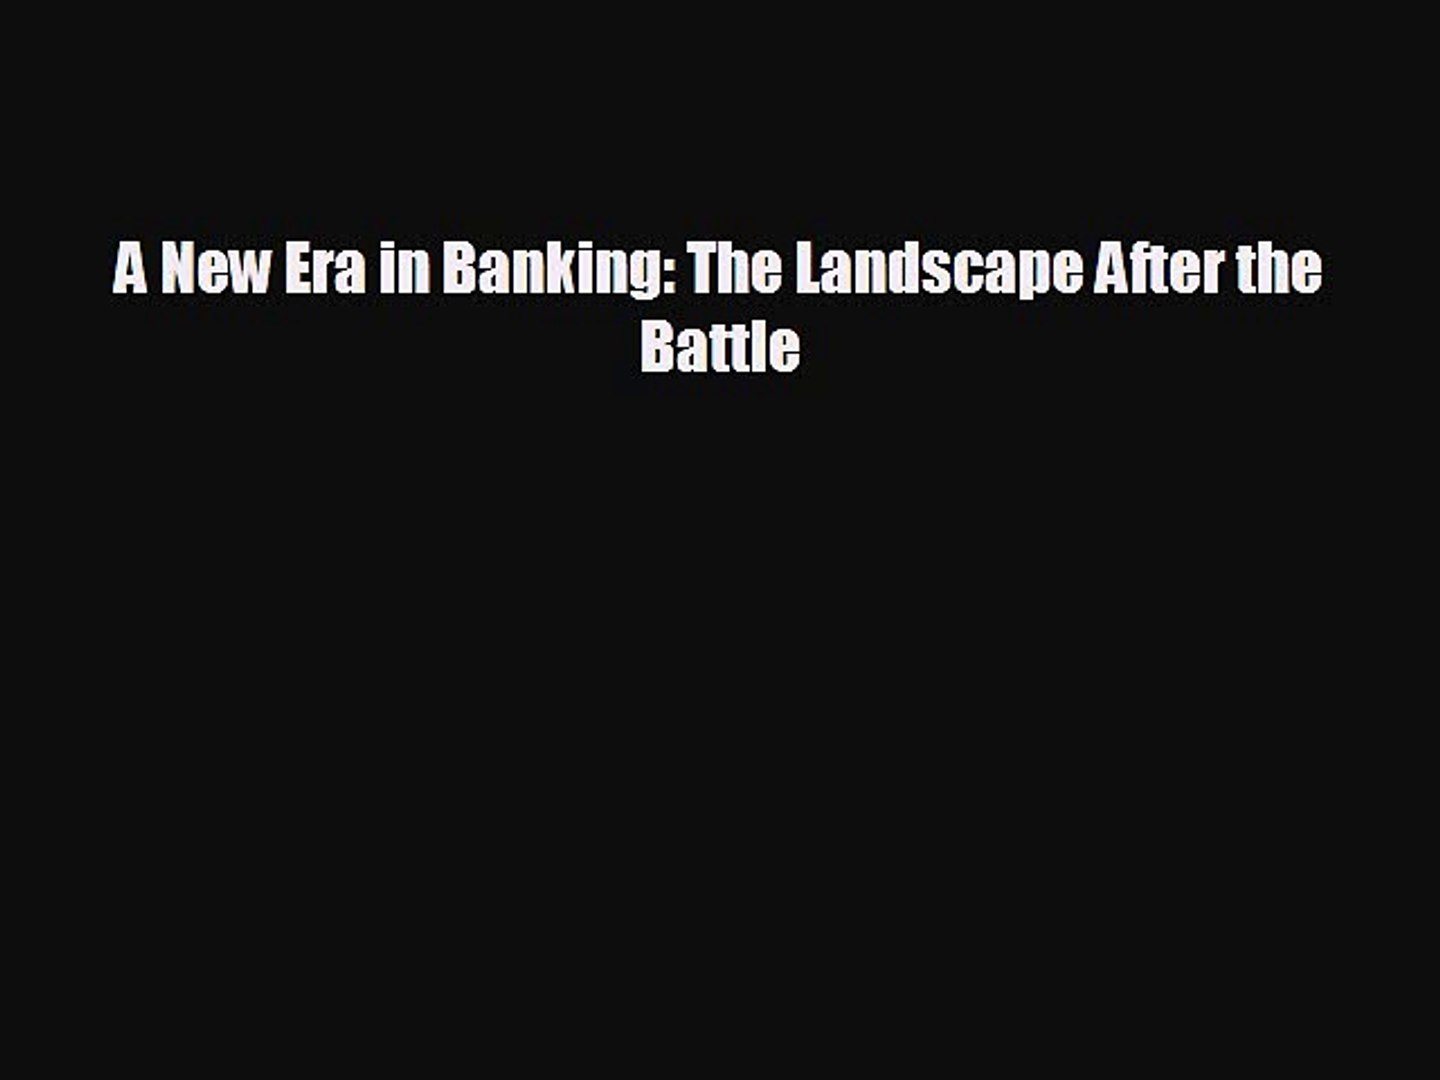 Free [PDF] Downlaod A New Era in Banking: The Landscape After the Battle#  DOWNLOAD ONLINE